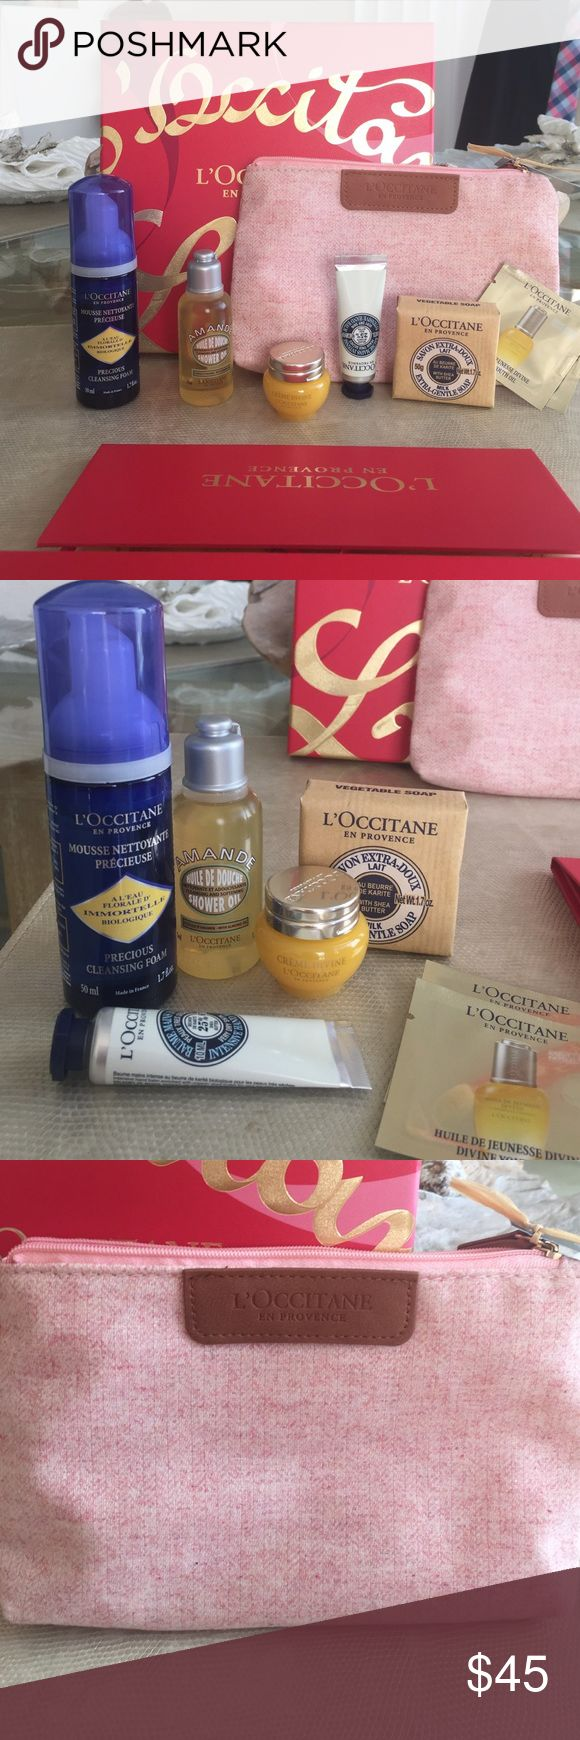 NWT L'OCCITANE gift set Brand new set includes 1.7 oz precious cleansing foam (my absolute favorite face wash I will only use this for the rest of my life) 💫1.1 oz Amande Shower Oil 💫travel size Divine Cream (one of the best in the world full size is over $100) 💫1.7 oz Shea milk soap .💫Travel size Shea butter intense hand cream 💫2 samples of Divine Youth oil and 💫gift wrapping set!💫 pretty pink travel bag Loccitane Makeup Brushes & Tools